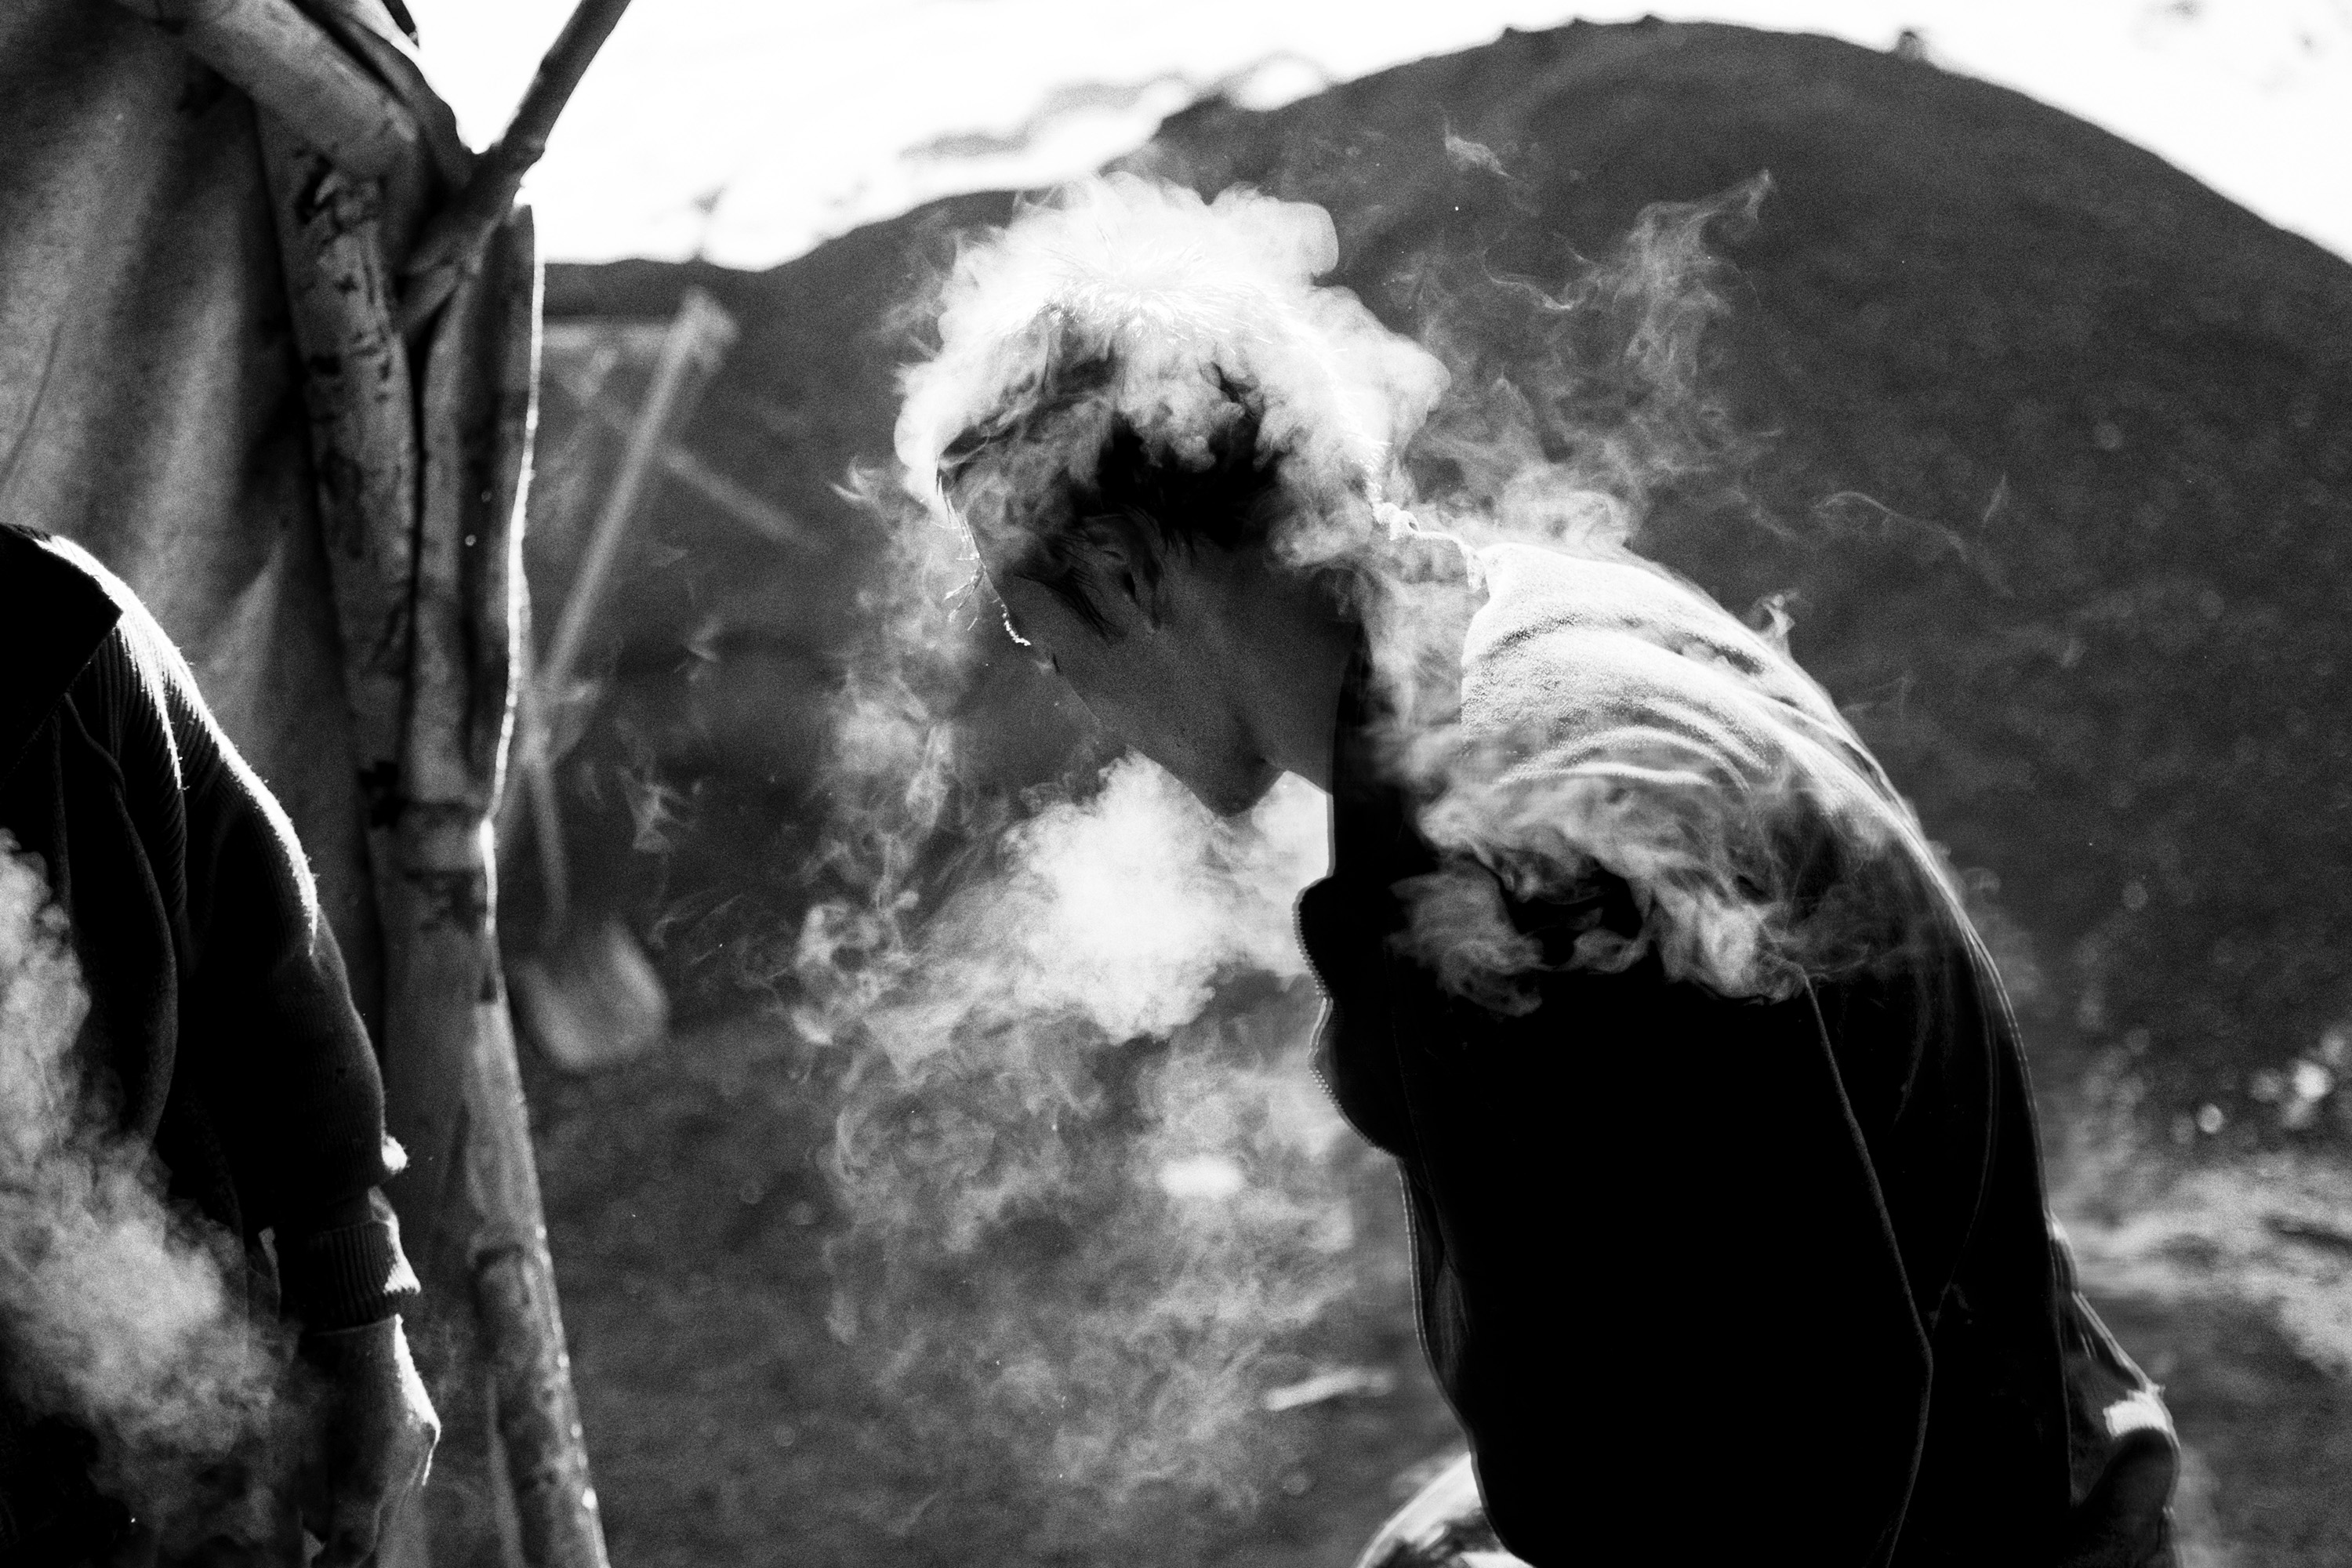 The Self Made Apaches Of Kyrgyzstan New Eastern Europe A Ultrasonic Mist Fog Maker Power From Pc Supply Diy Guerilla Growing Photo By Magdadelna Borowiec